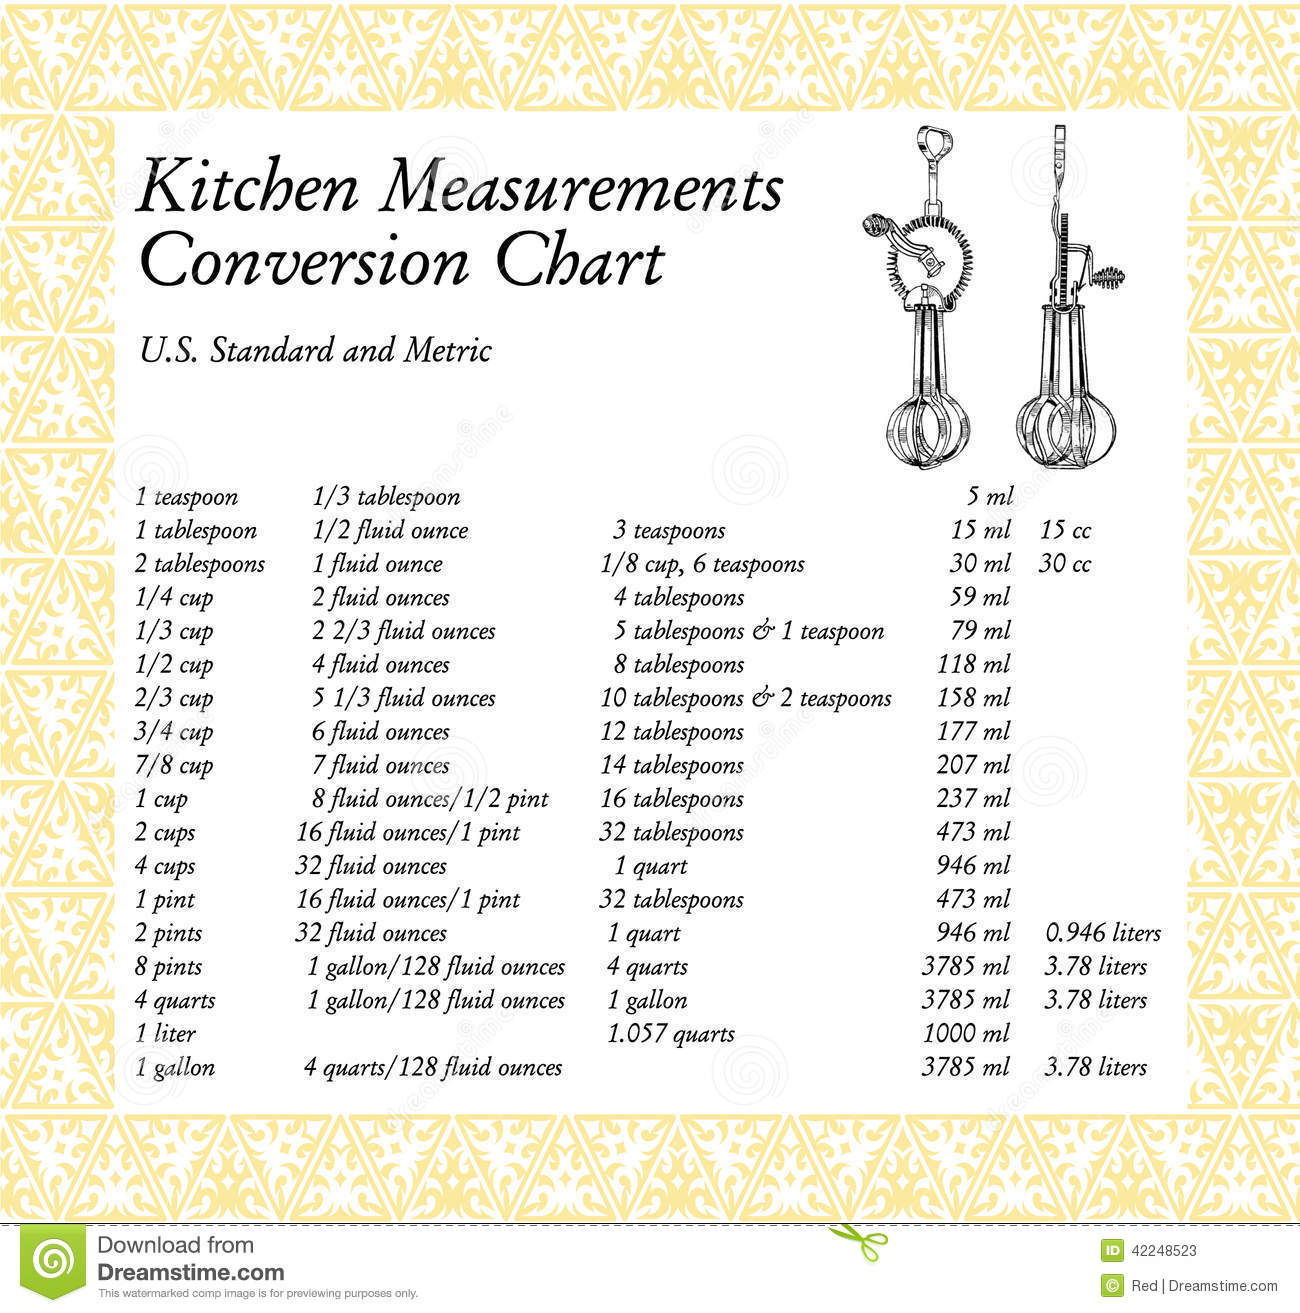 stock photos kitchen measurements conversion chart image 42248523. Black Bedroom Furniture Sets. Home Design Ideas